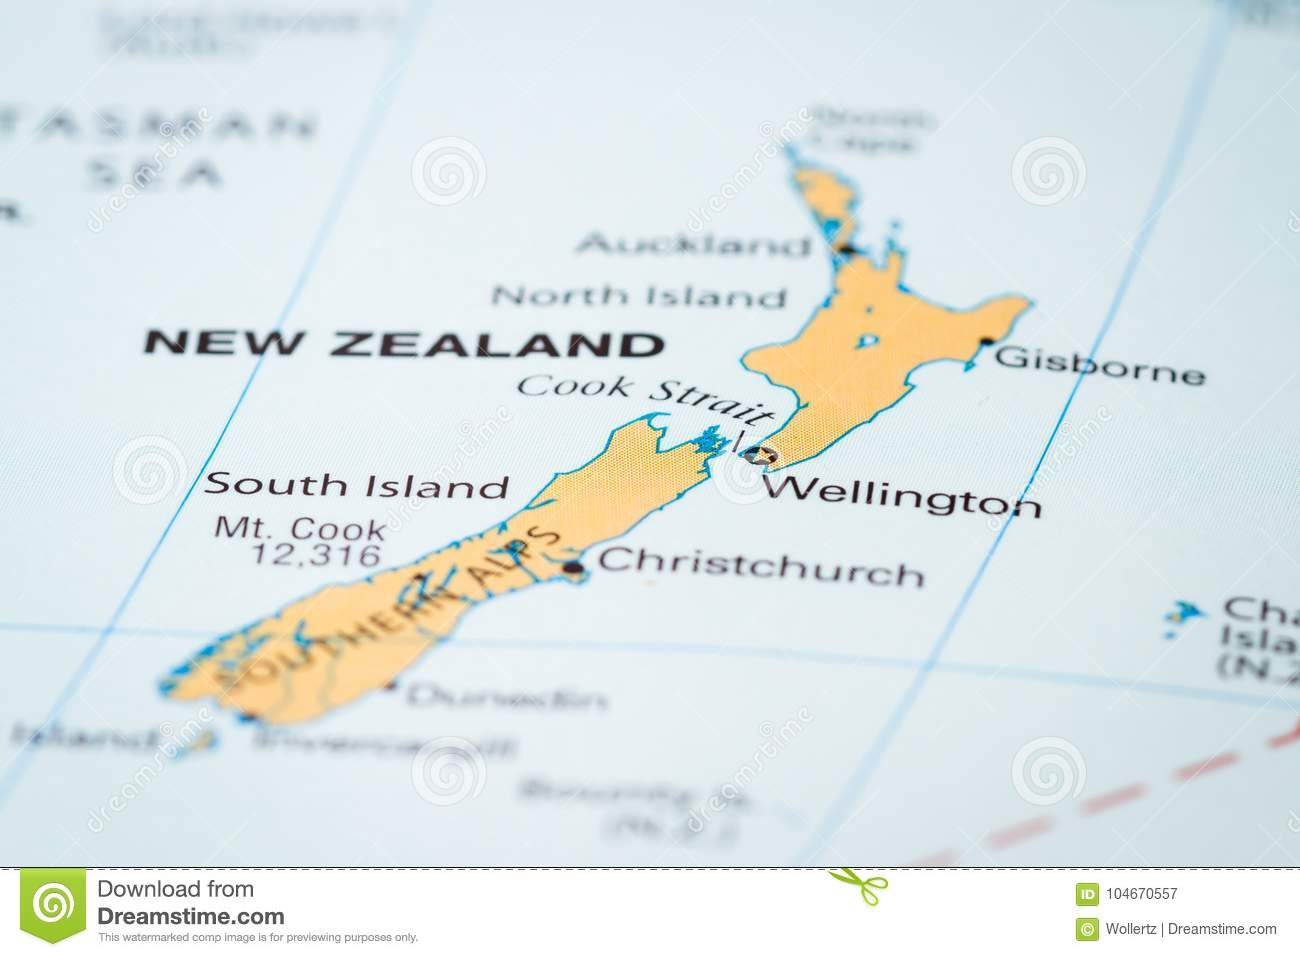 A Map Of New Zealand.New Zealand On A Map Stock Image Image Of Area Destination 104670557